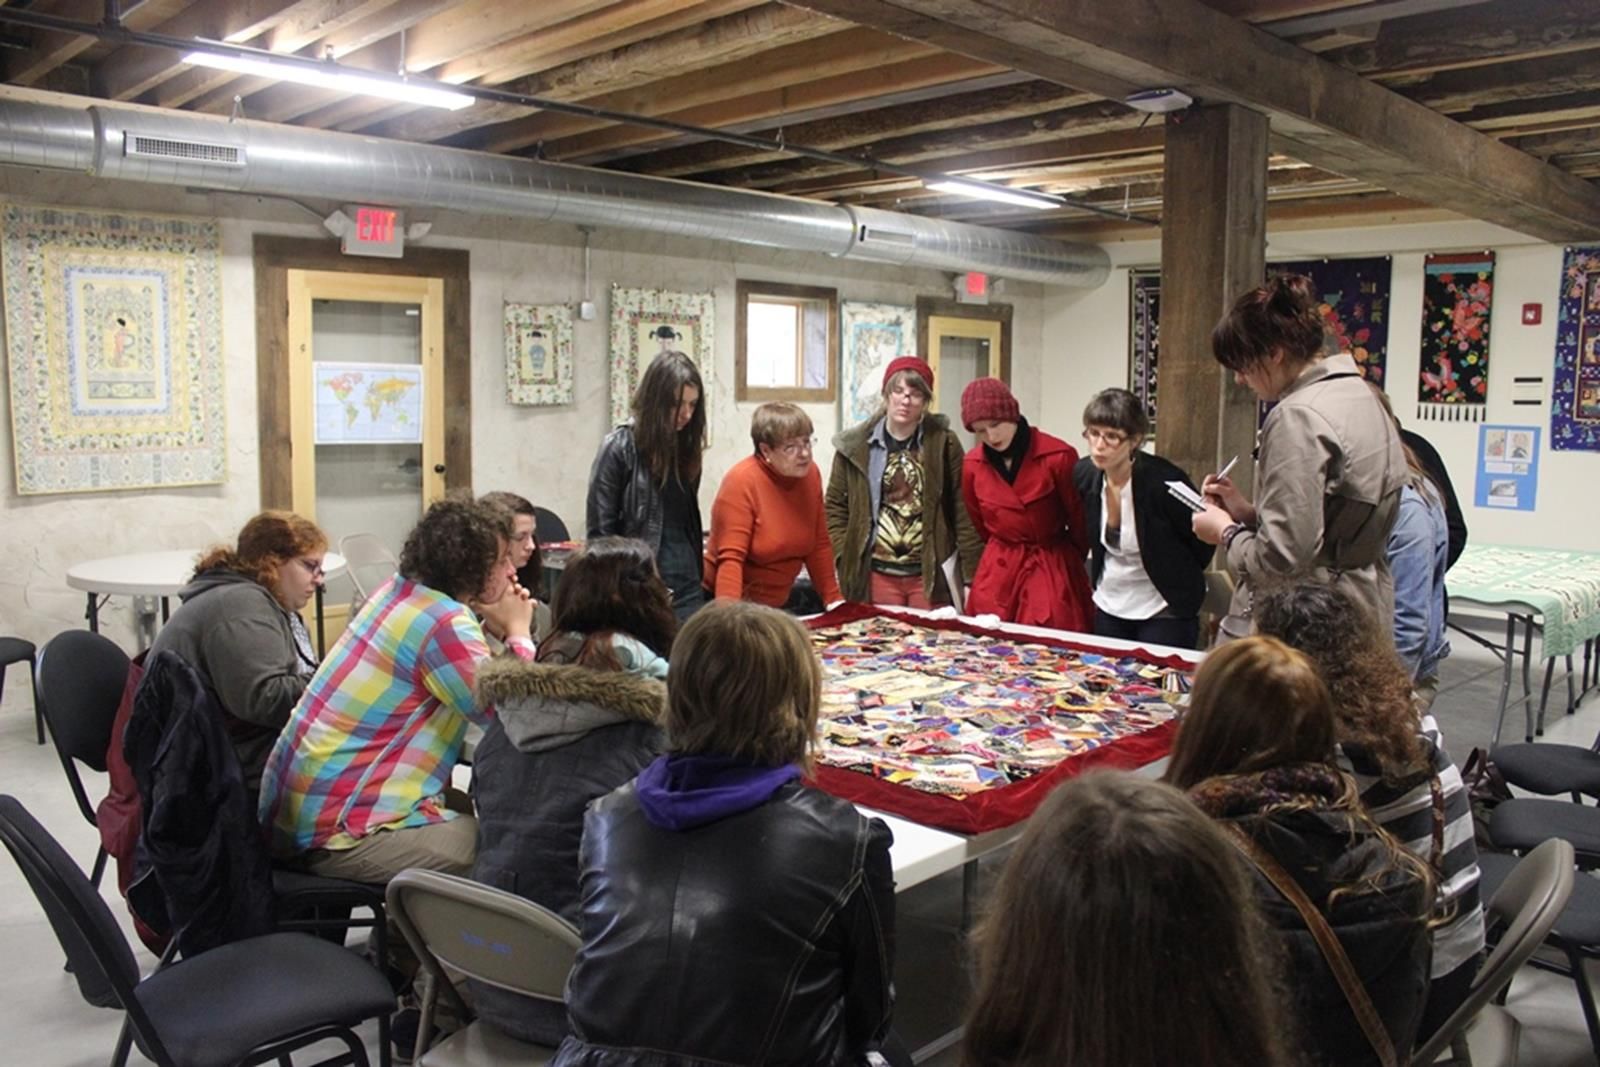 A student group designing a quilt. Credit: Wisconsin Museum of Quilts and Fiber Arts